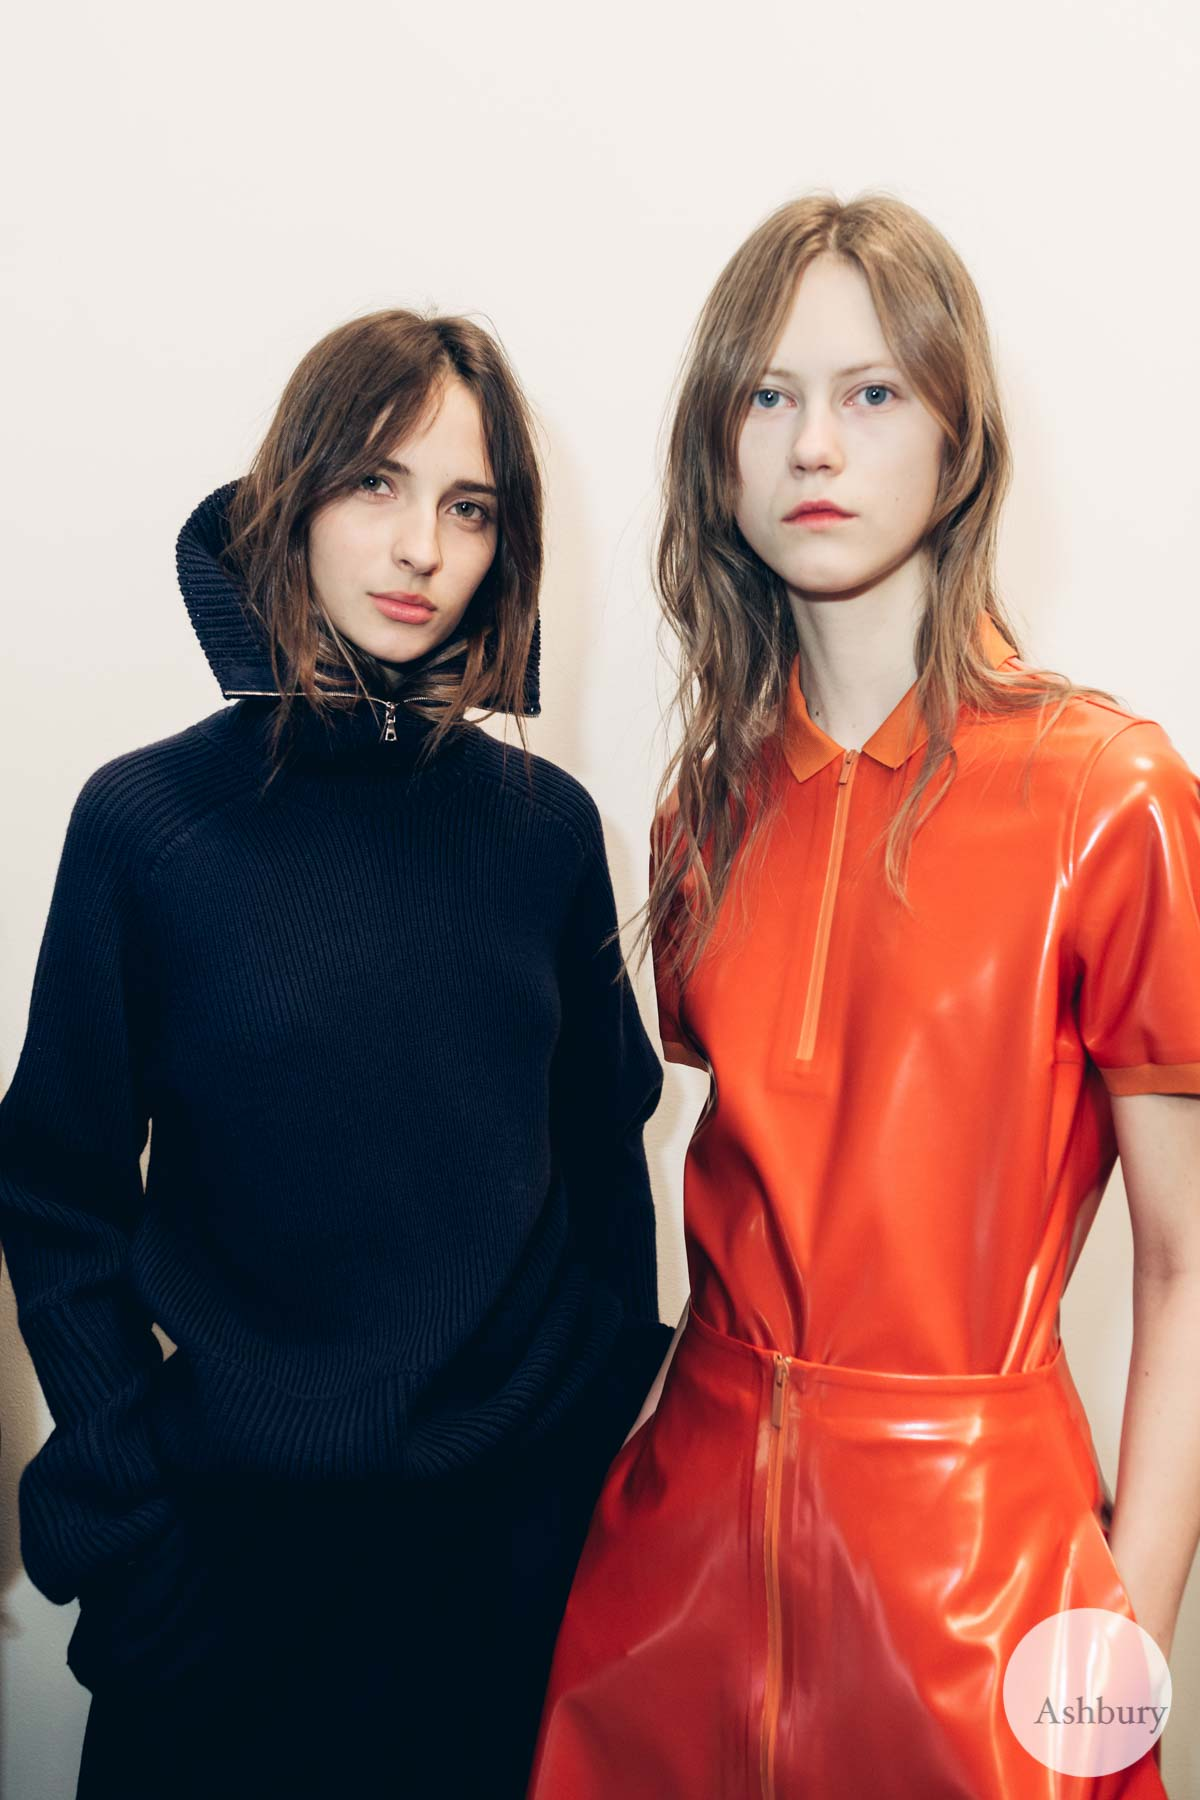 lacoste fw16 - Waleska Gorczevski and Julie Hoomans